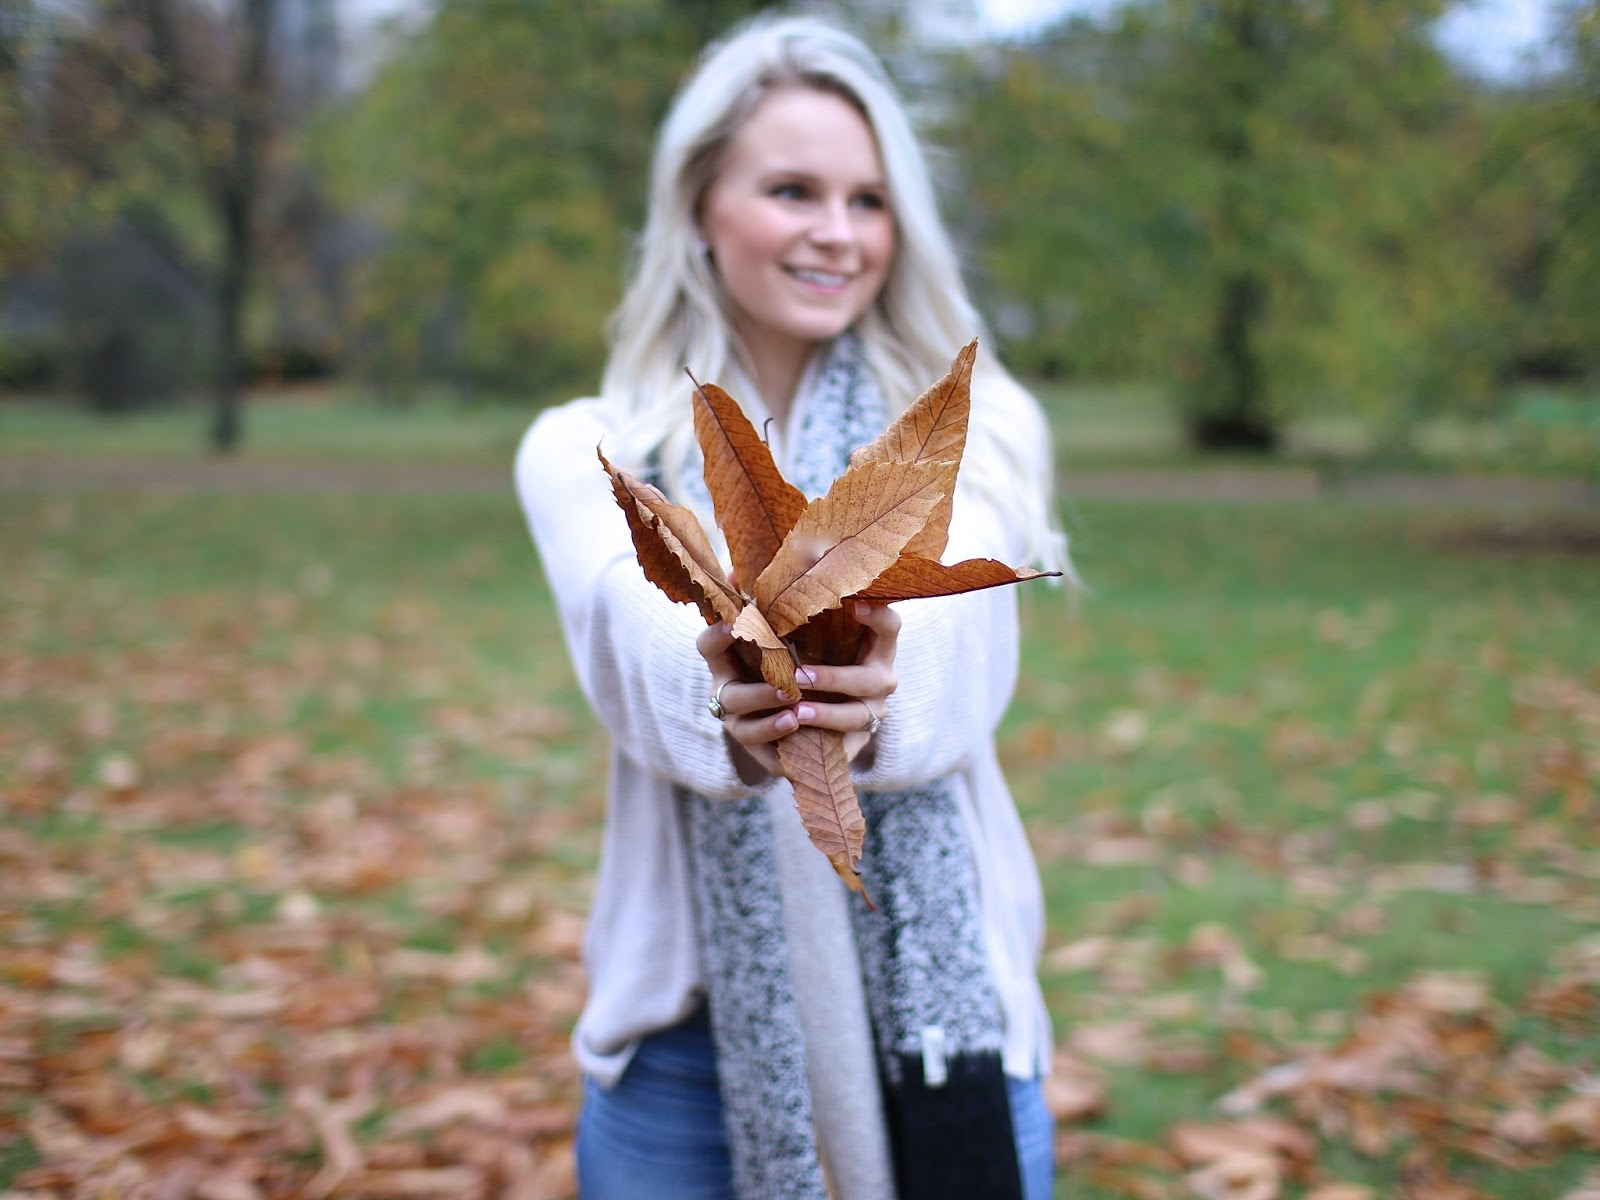 photography, holding leaves at the camera, 1.5 aperture while in hyde park, london